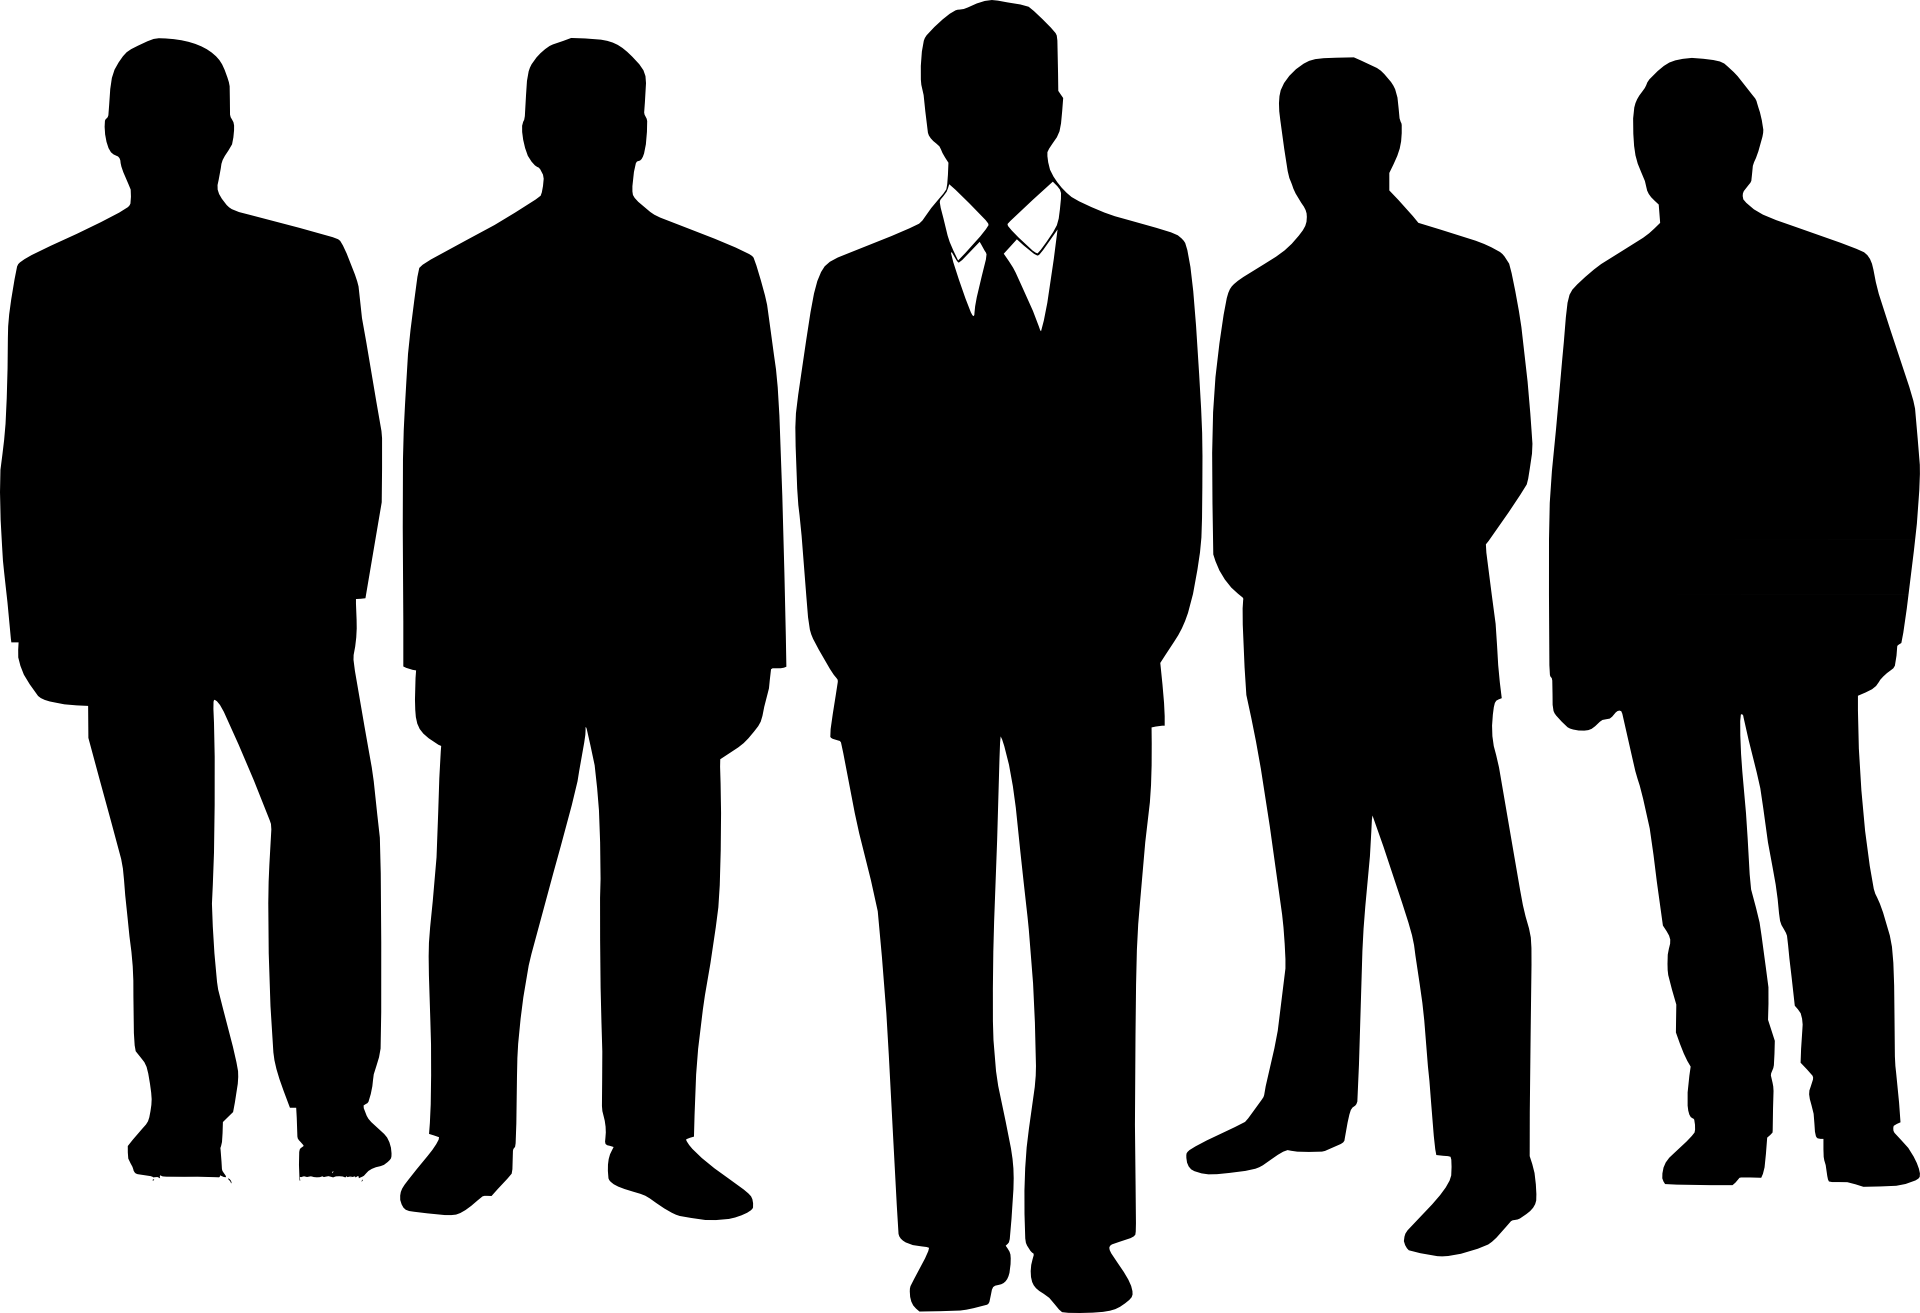 Free Man Silhouette Vector, Download Free Clip Art, Free